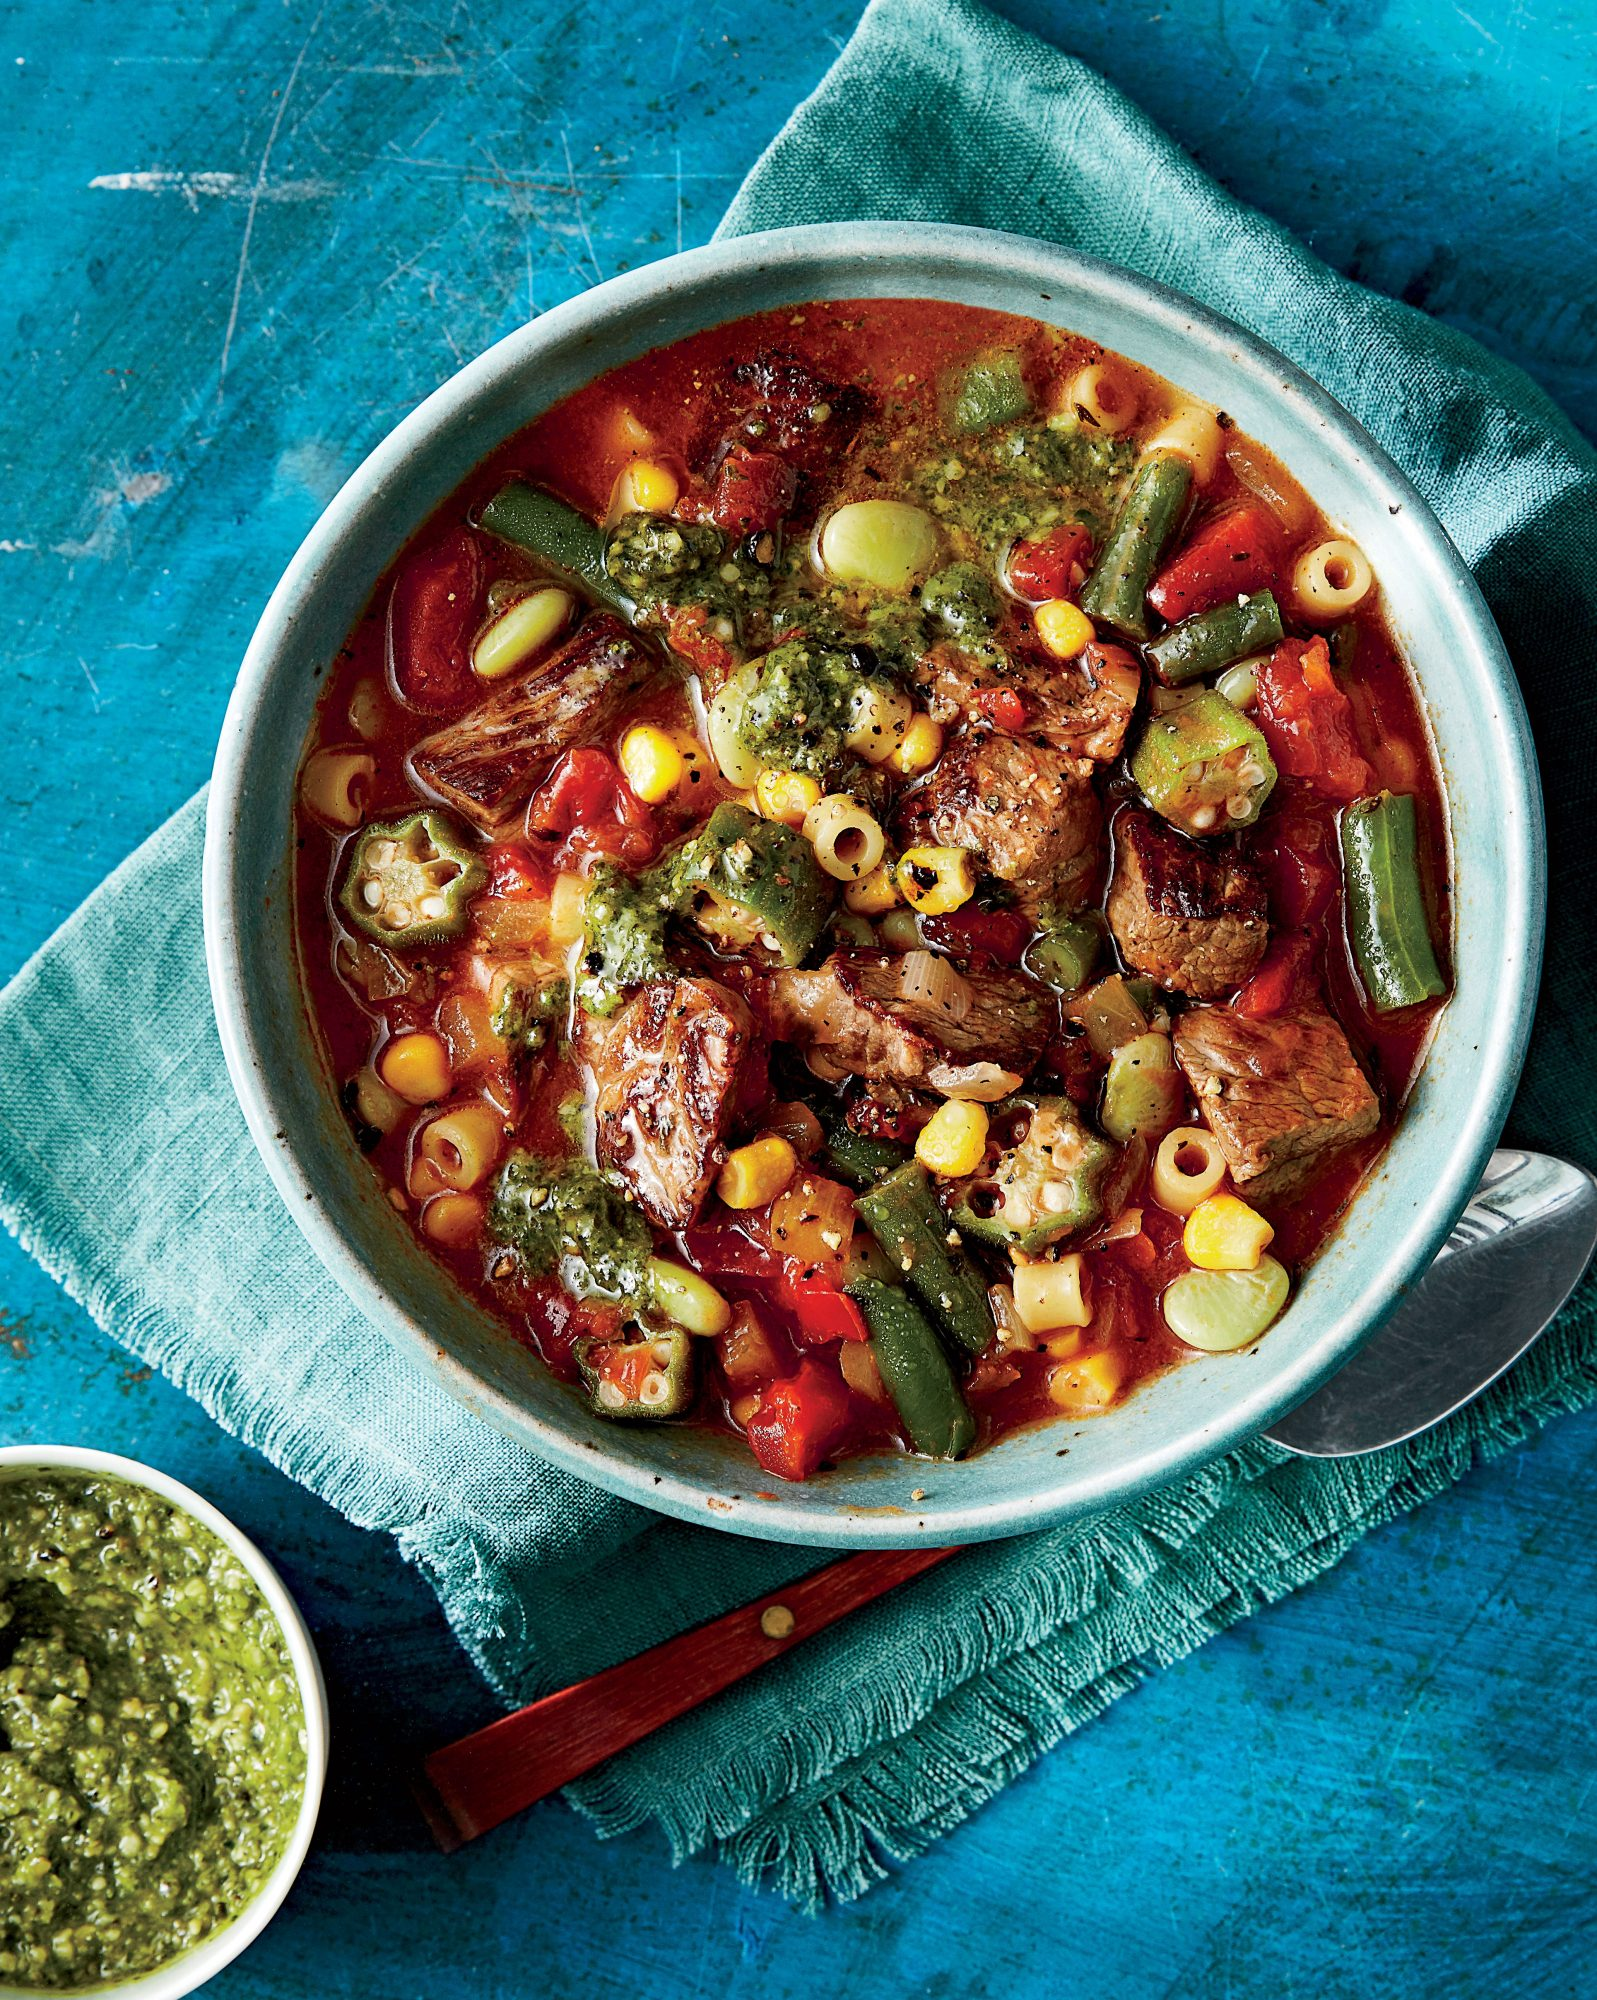 Hearty Beef and Freezer Veggie Soup Recipe